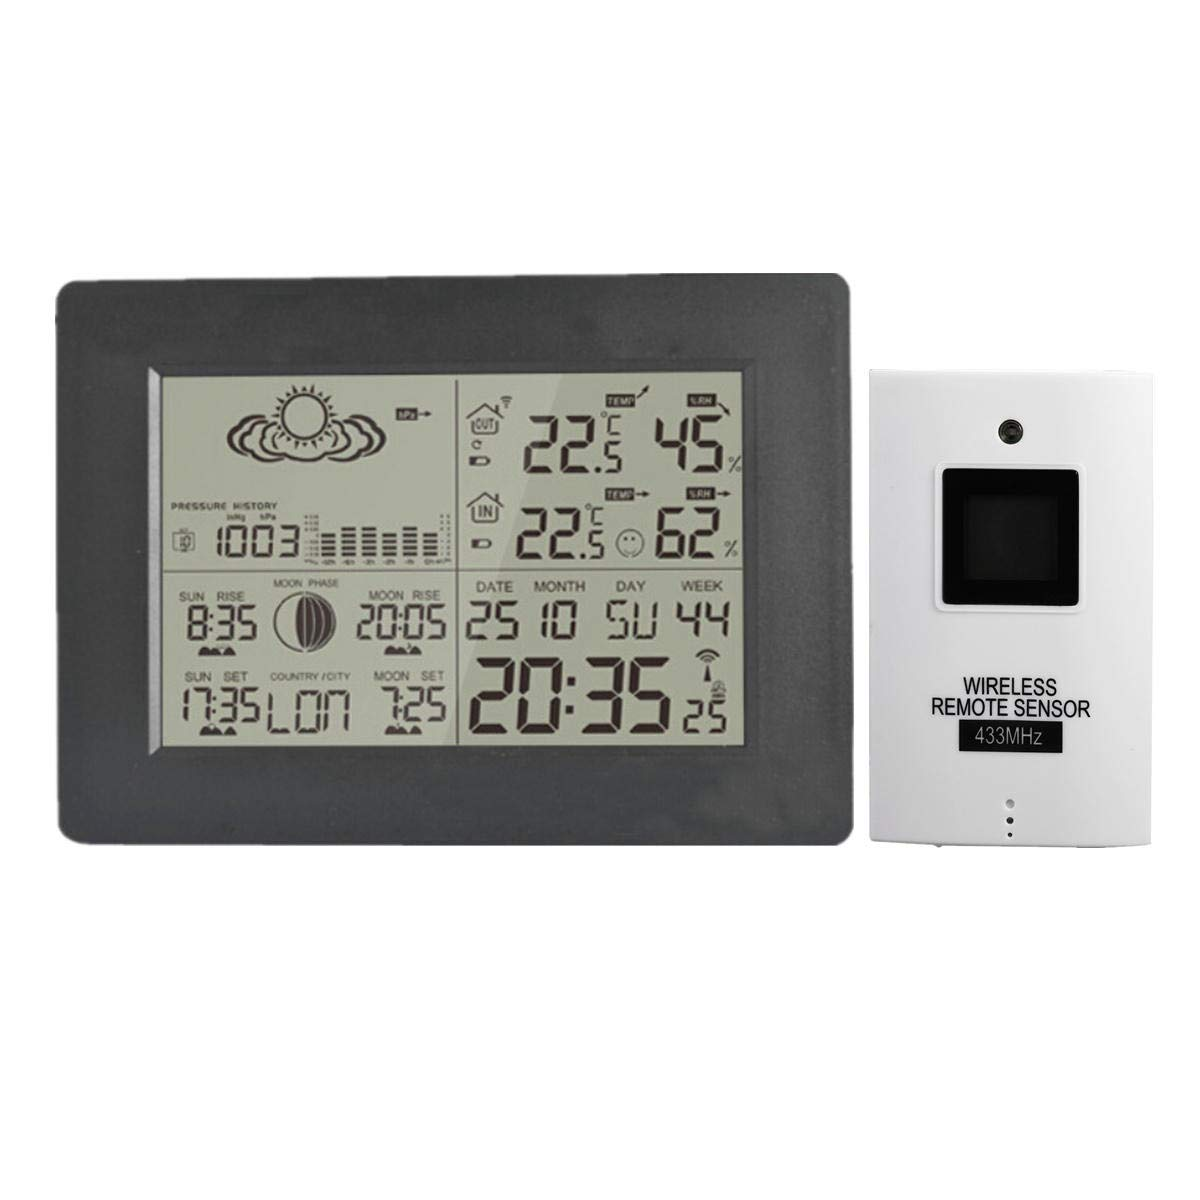 Anddoa LCD Wireless Weather Station Calendar Clock Thermometer Humidity with Backlight